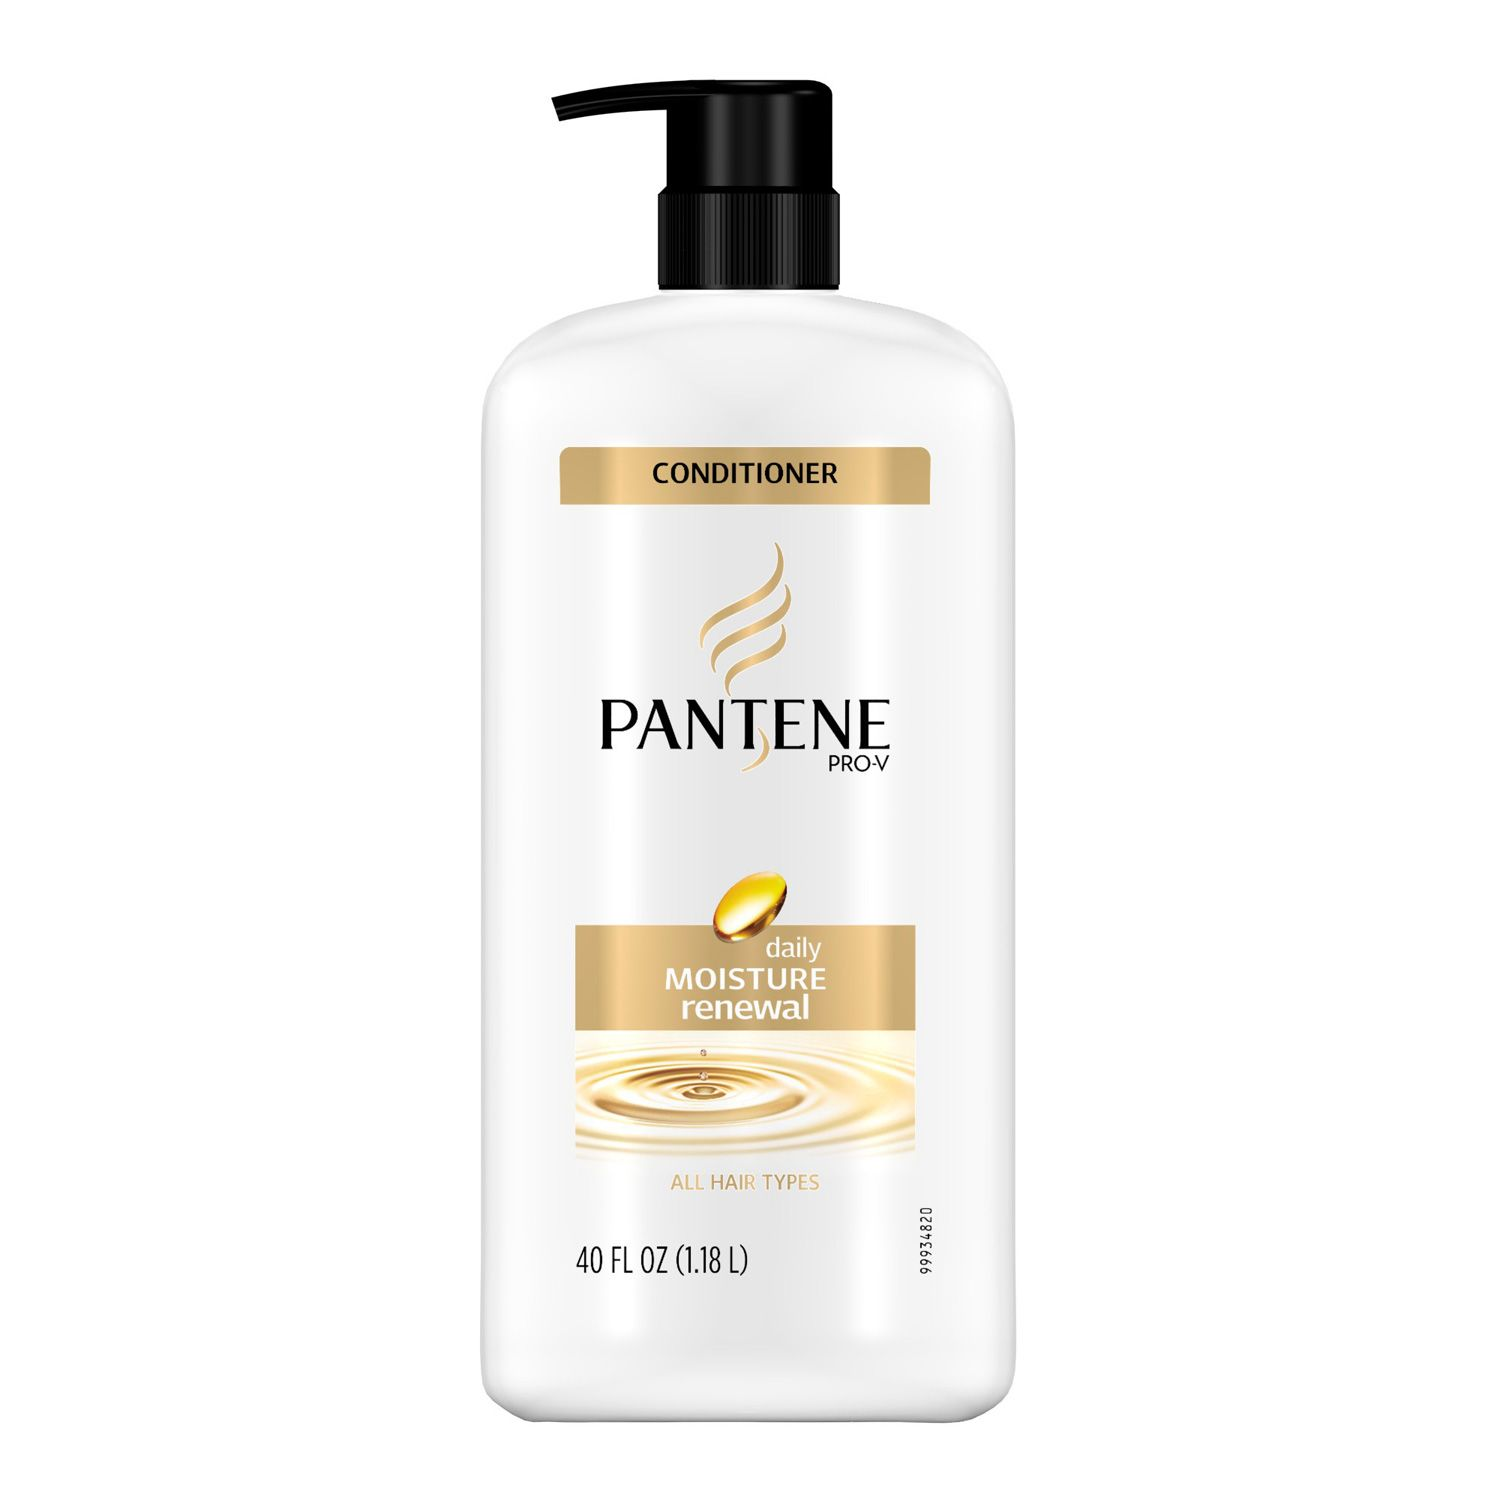 Pantene Daily Moisture Renewal Conditioner 40 oz Pump | eBay